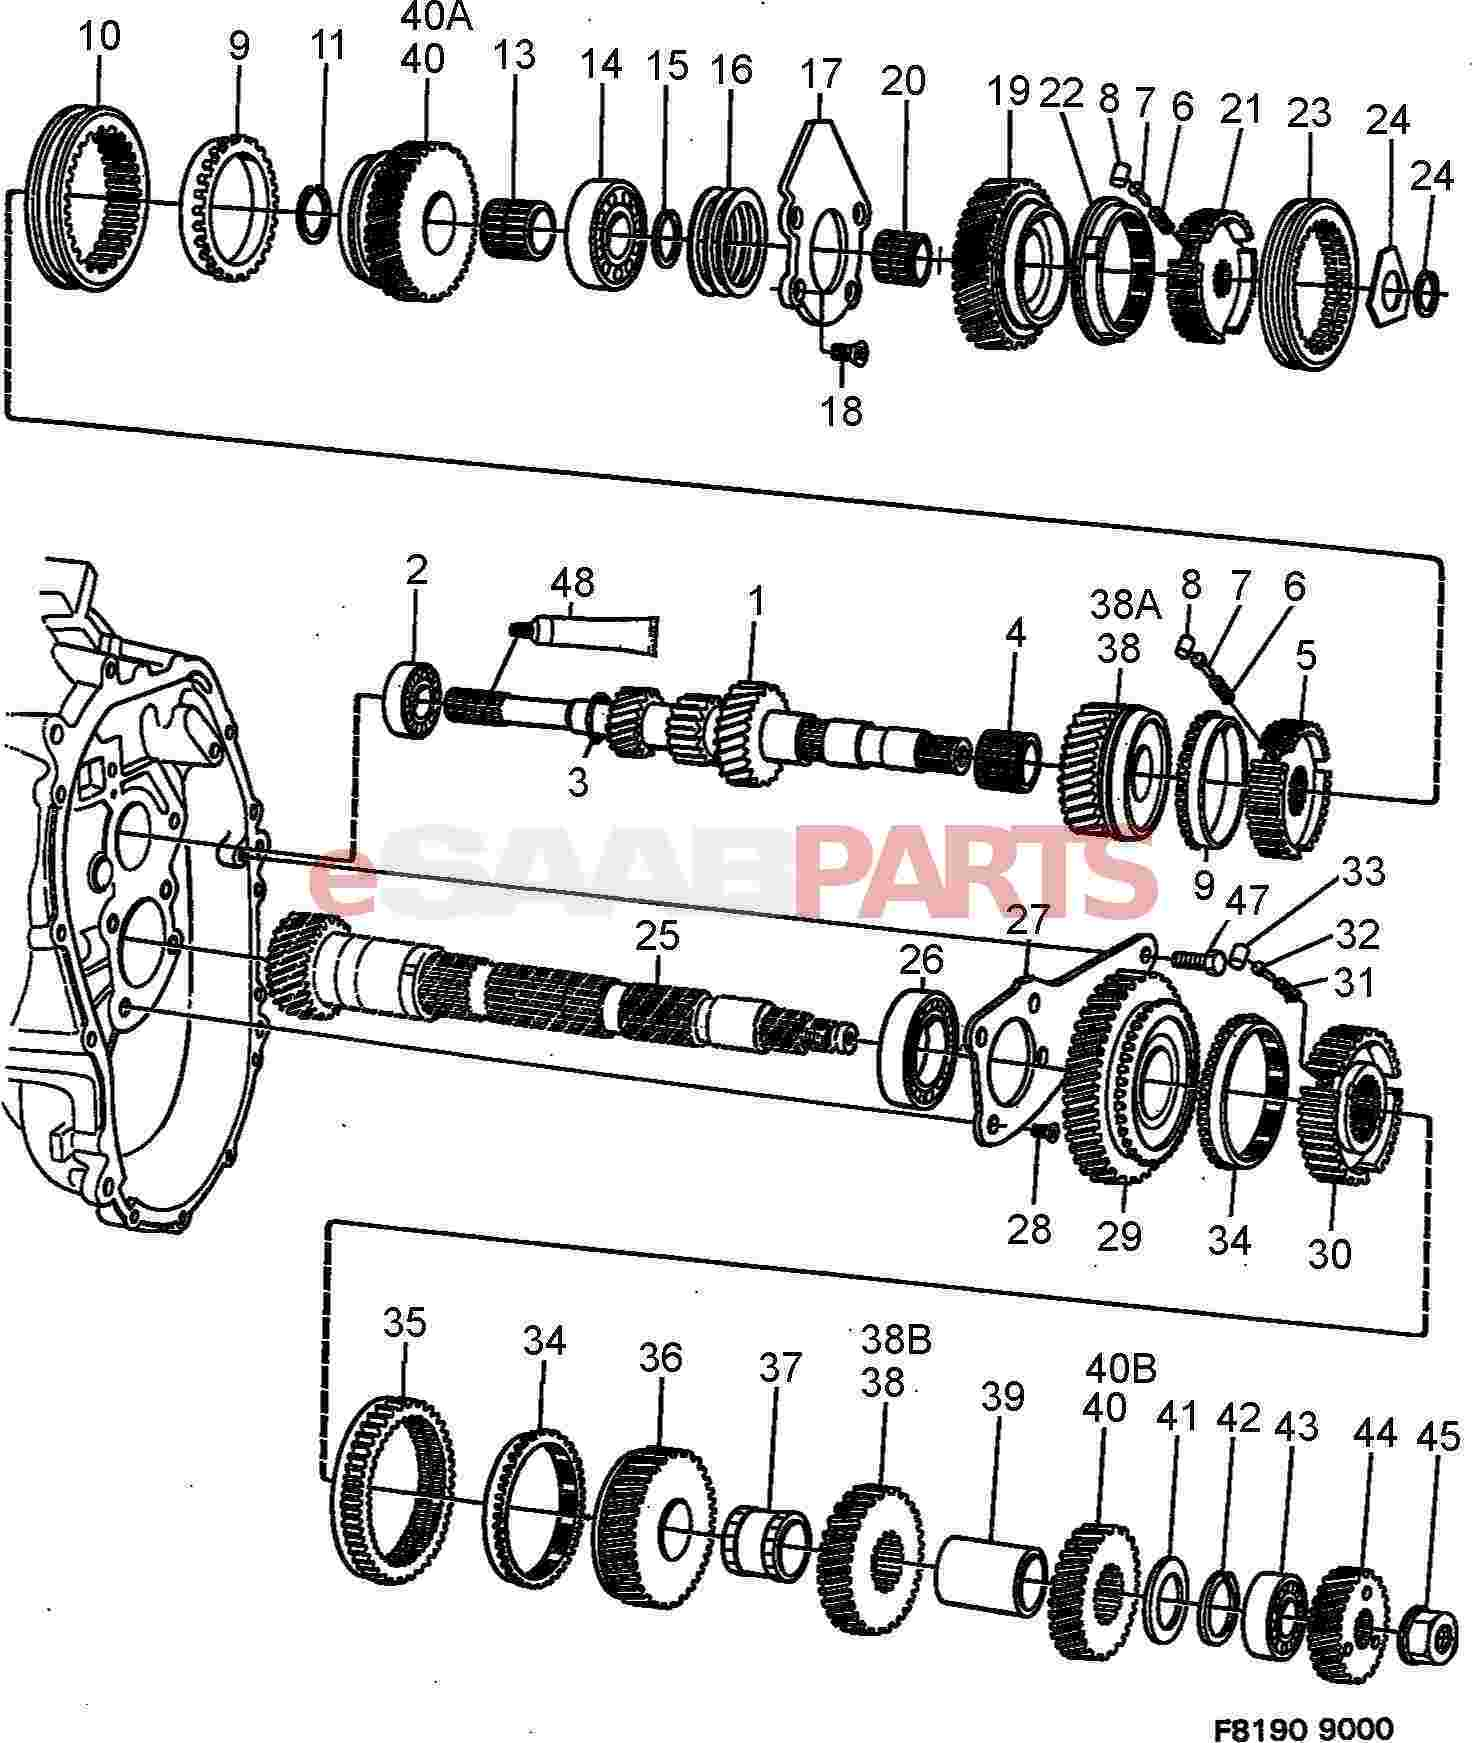 1998 Saab 9000 Manual Transmission Hub Replacement Diagram